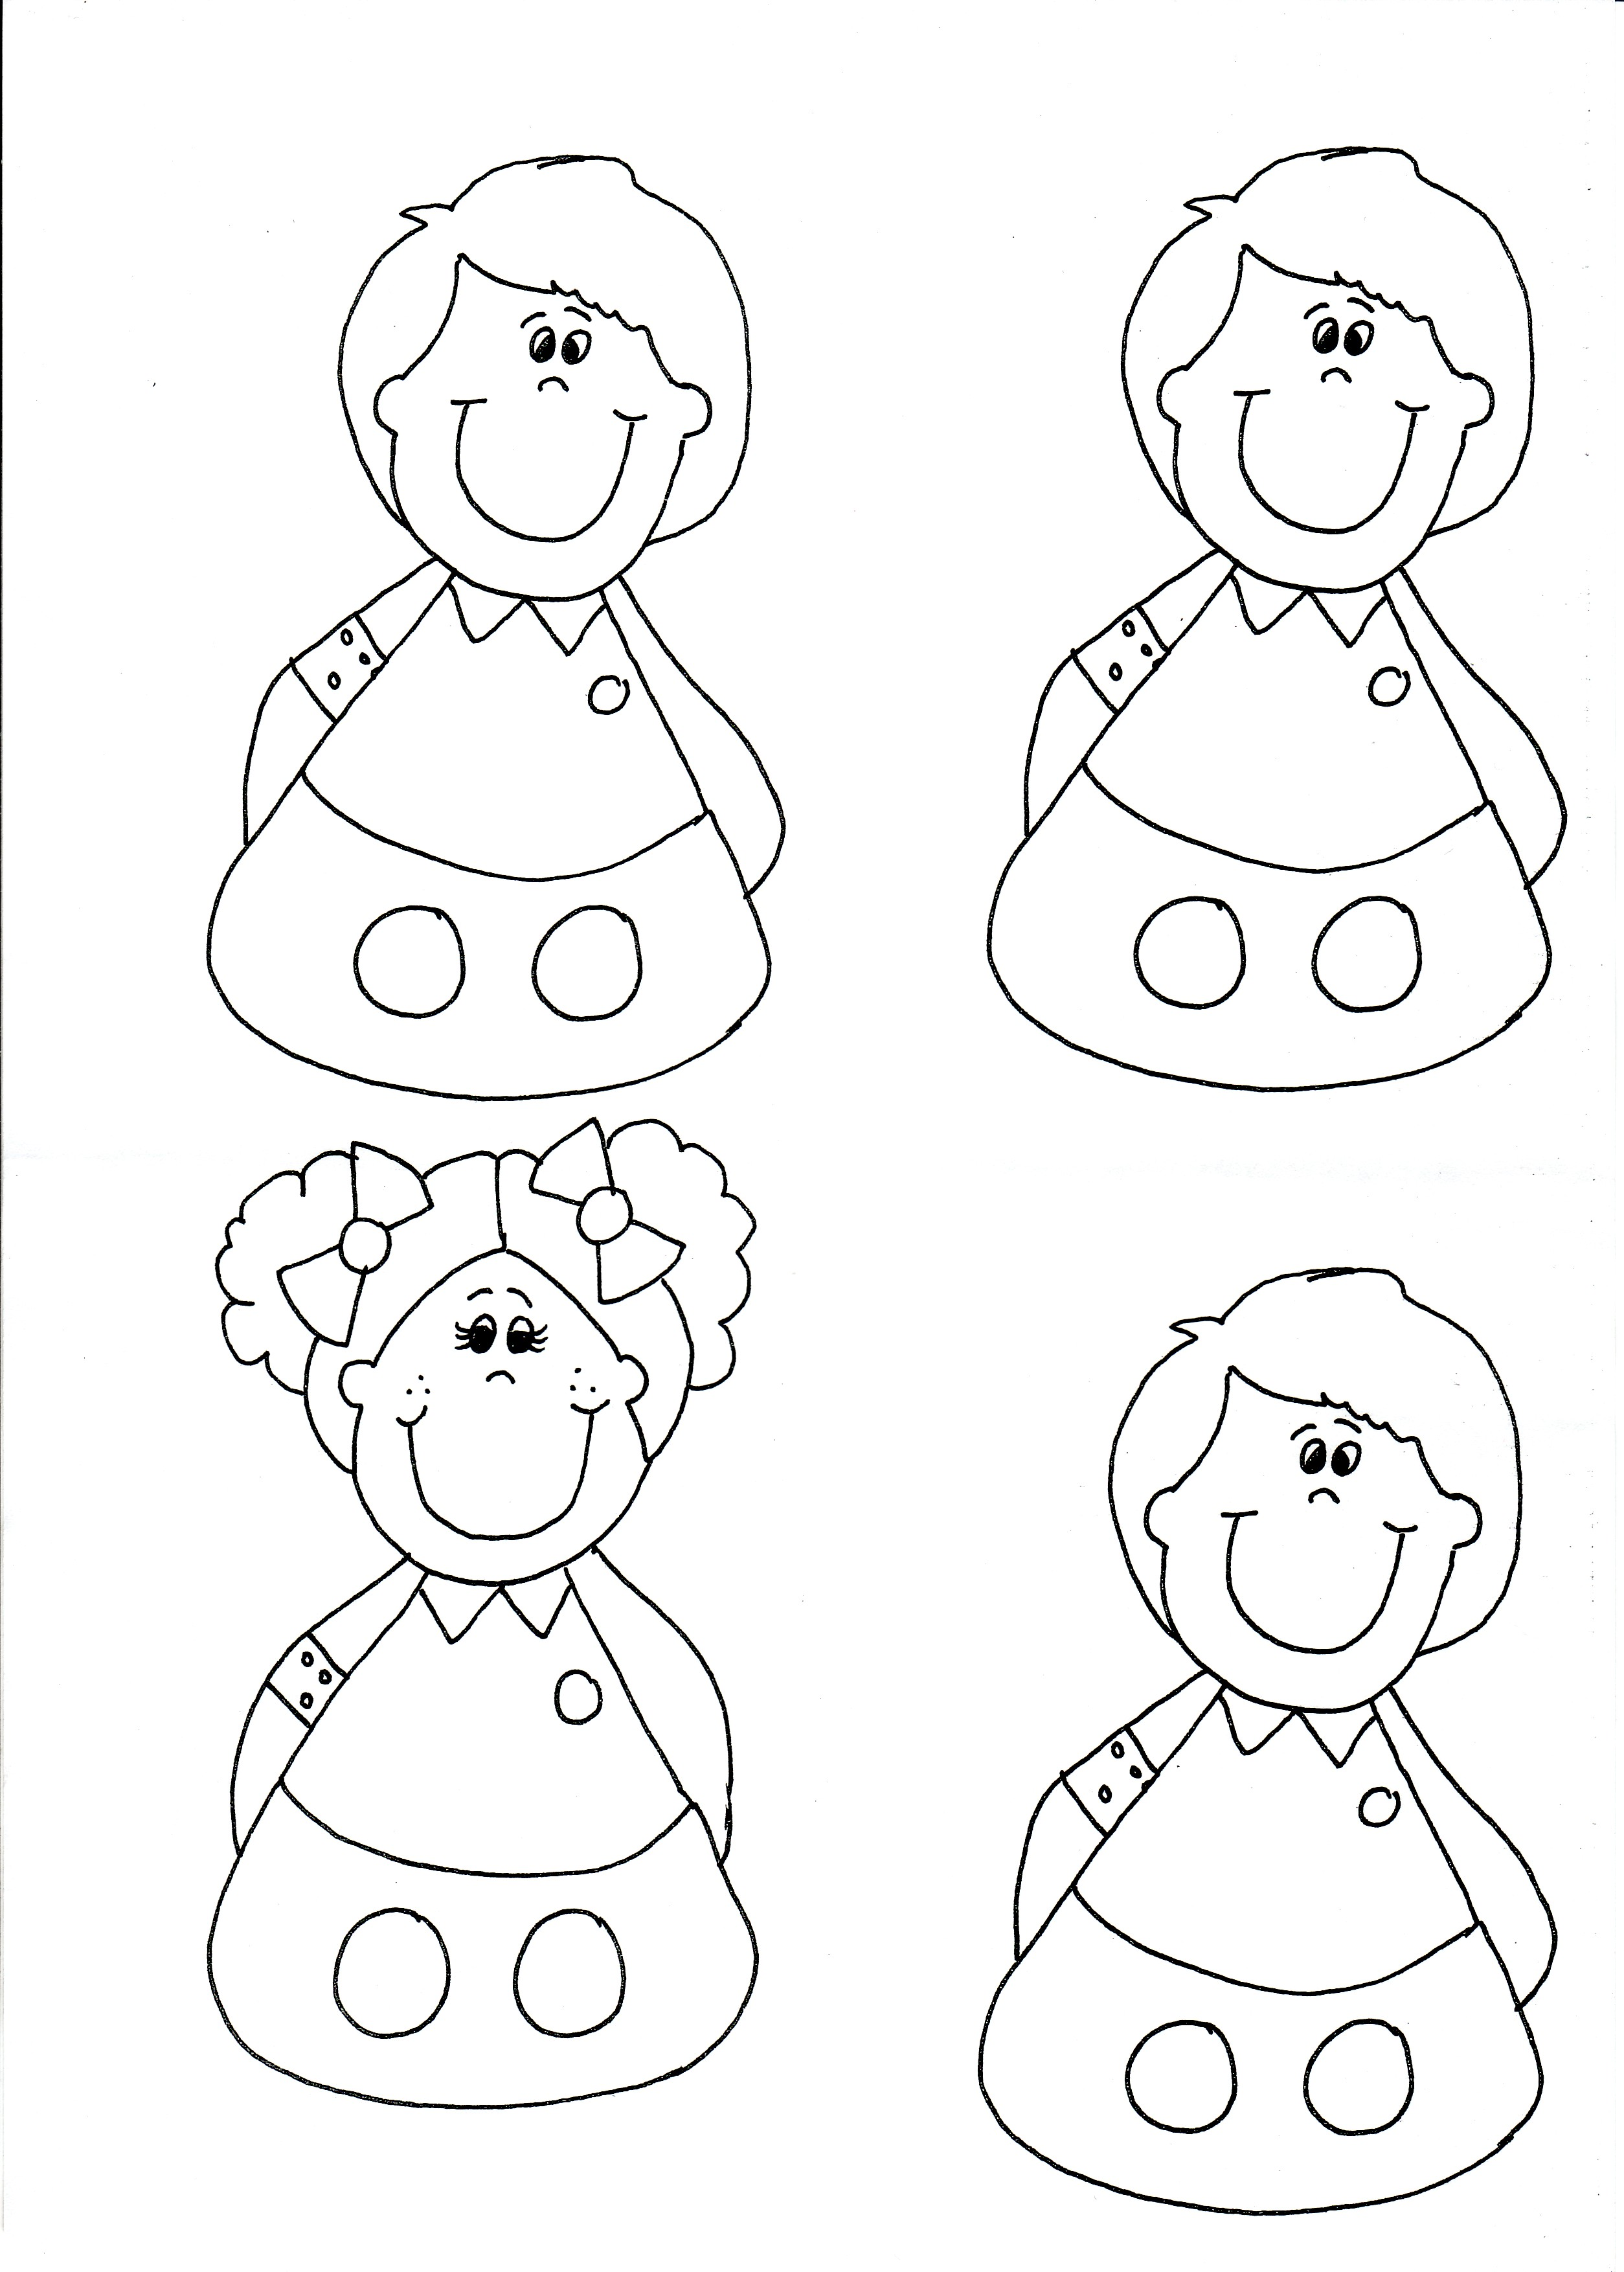 finger puppet template April.onthemarch.co